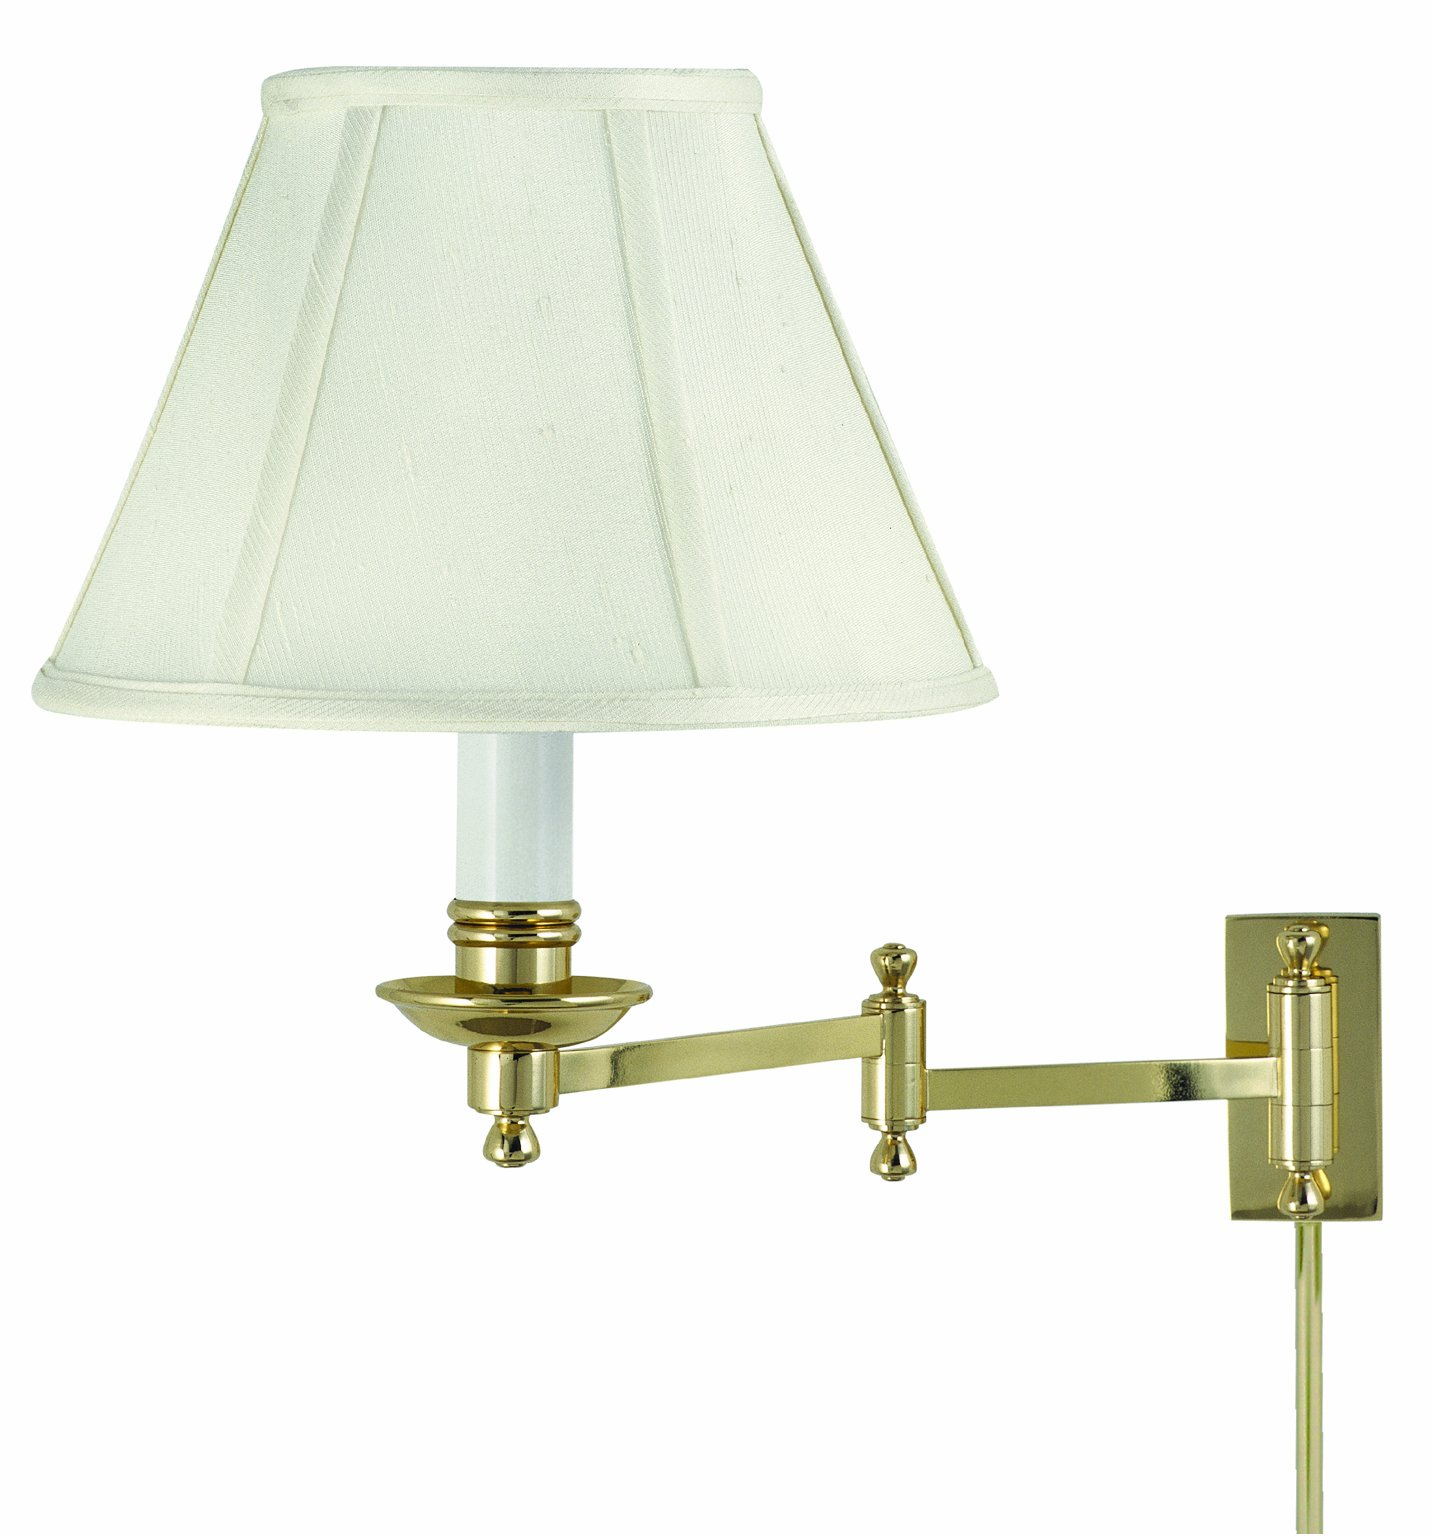 House of Troy LL660-PB Library Lamp Collection Swing Arm Wall Lamp Polished Brass with Off-white Softback Shade by House of Troy